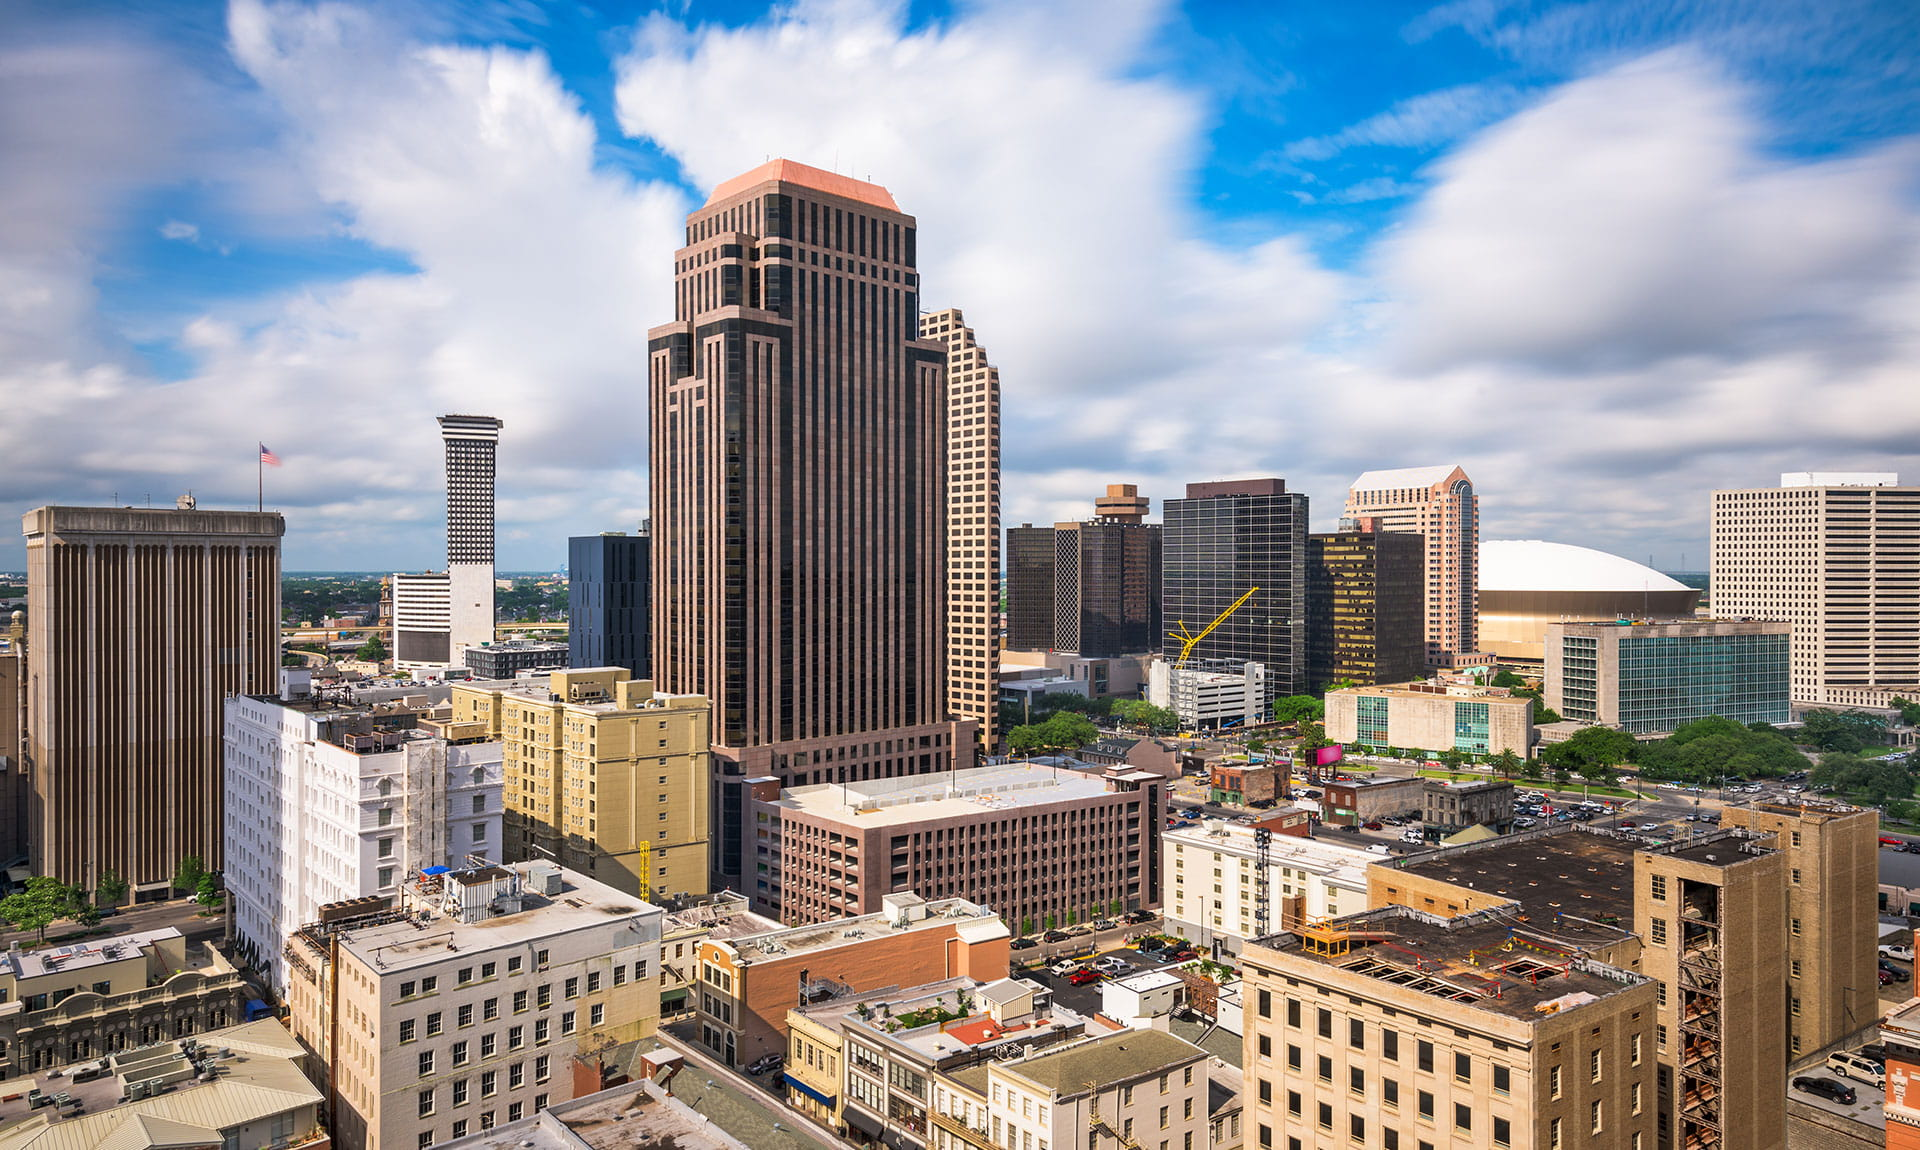 Aerial view of New Orleans